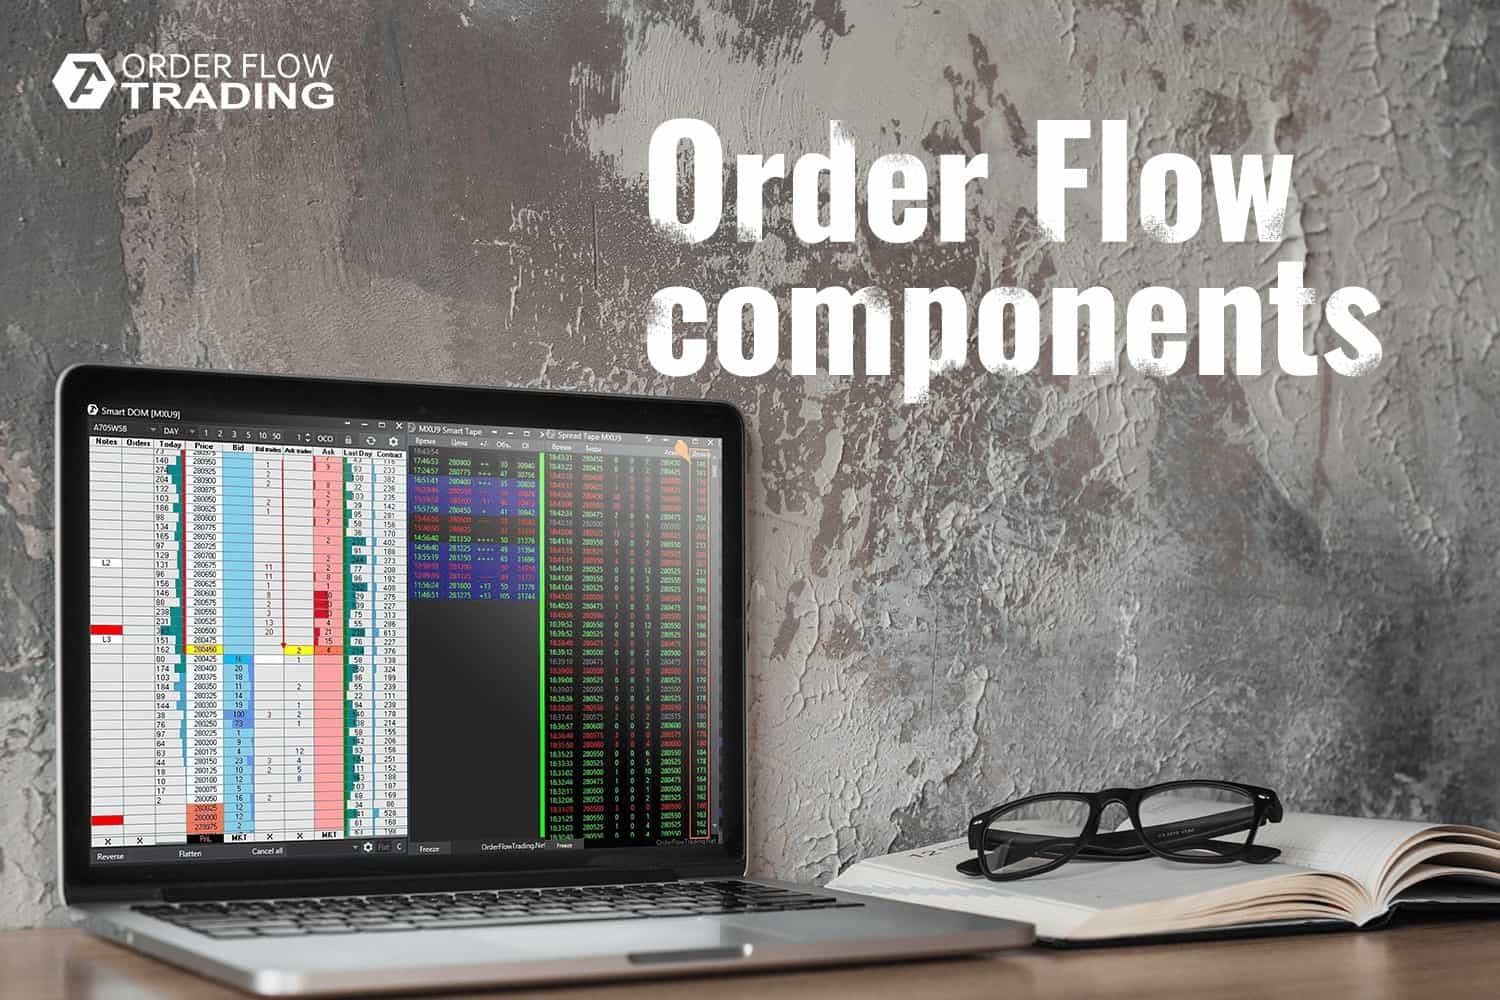 TOP-5 advice for beginner traders: how to read the order flow.